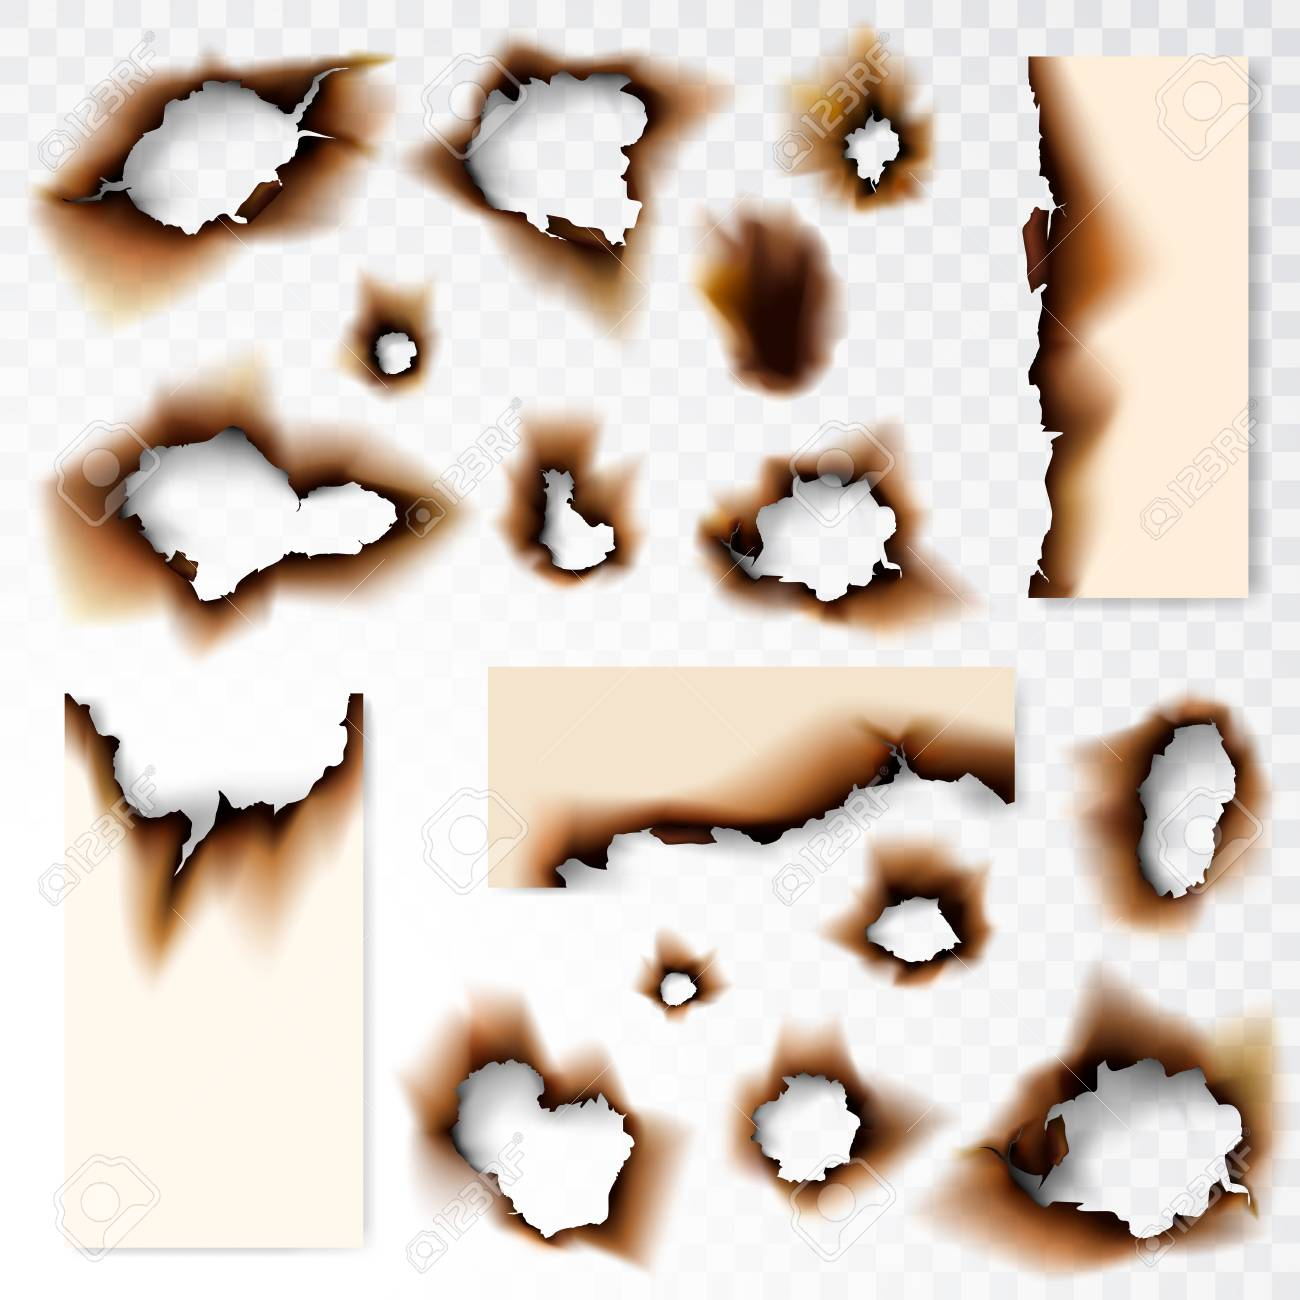 Collection of Burnt hole paper vector illustration on transparent background - 106706152